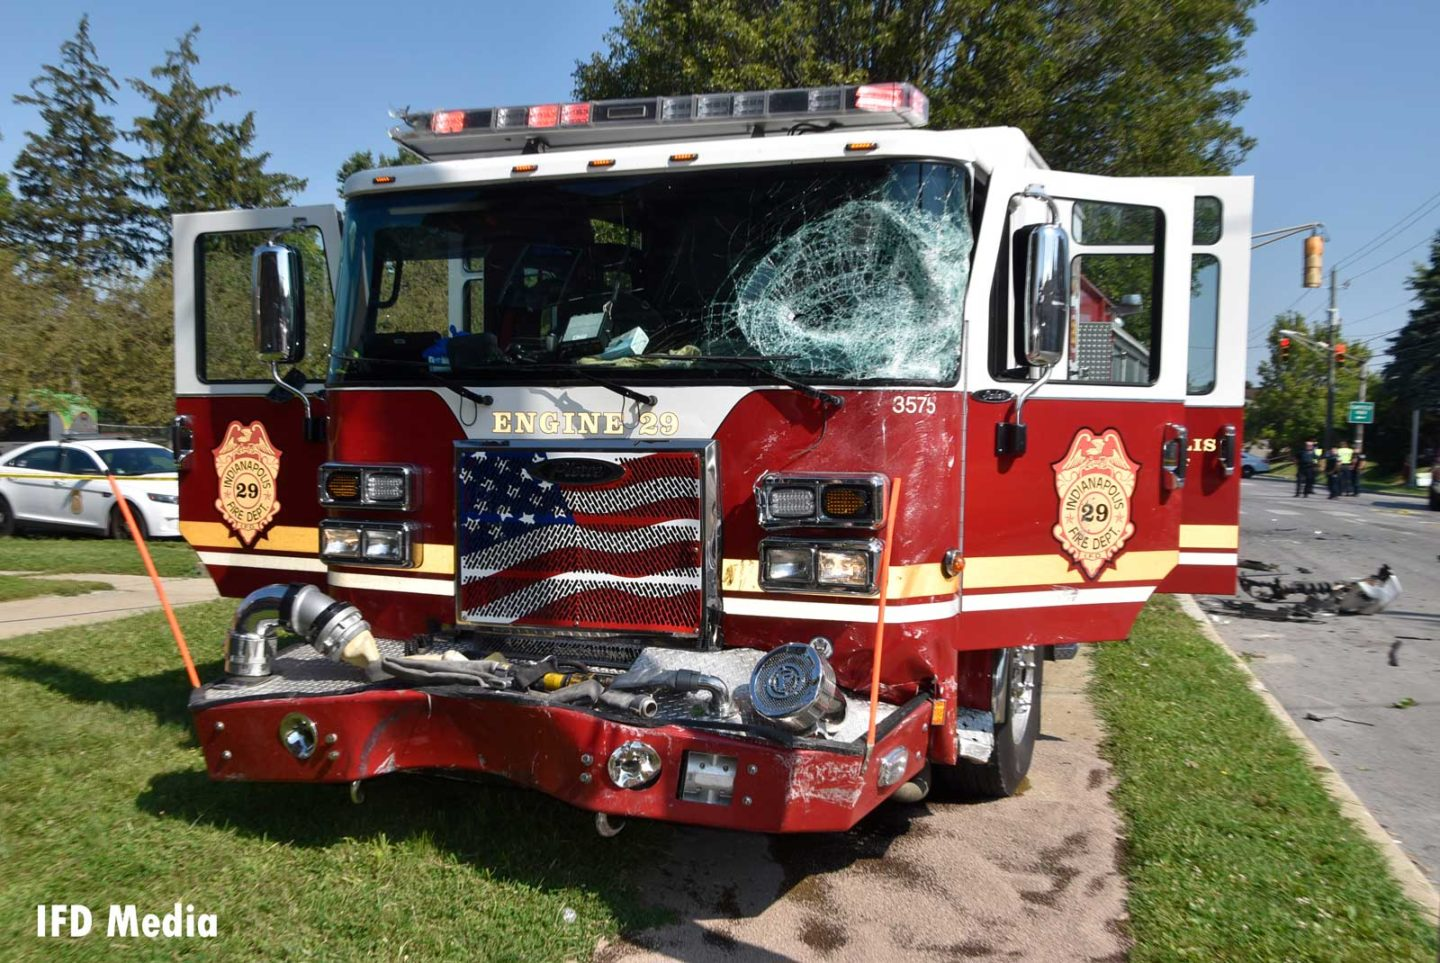 Front of damaged apparatus